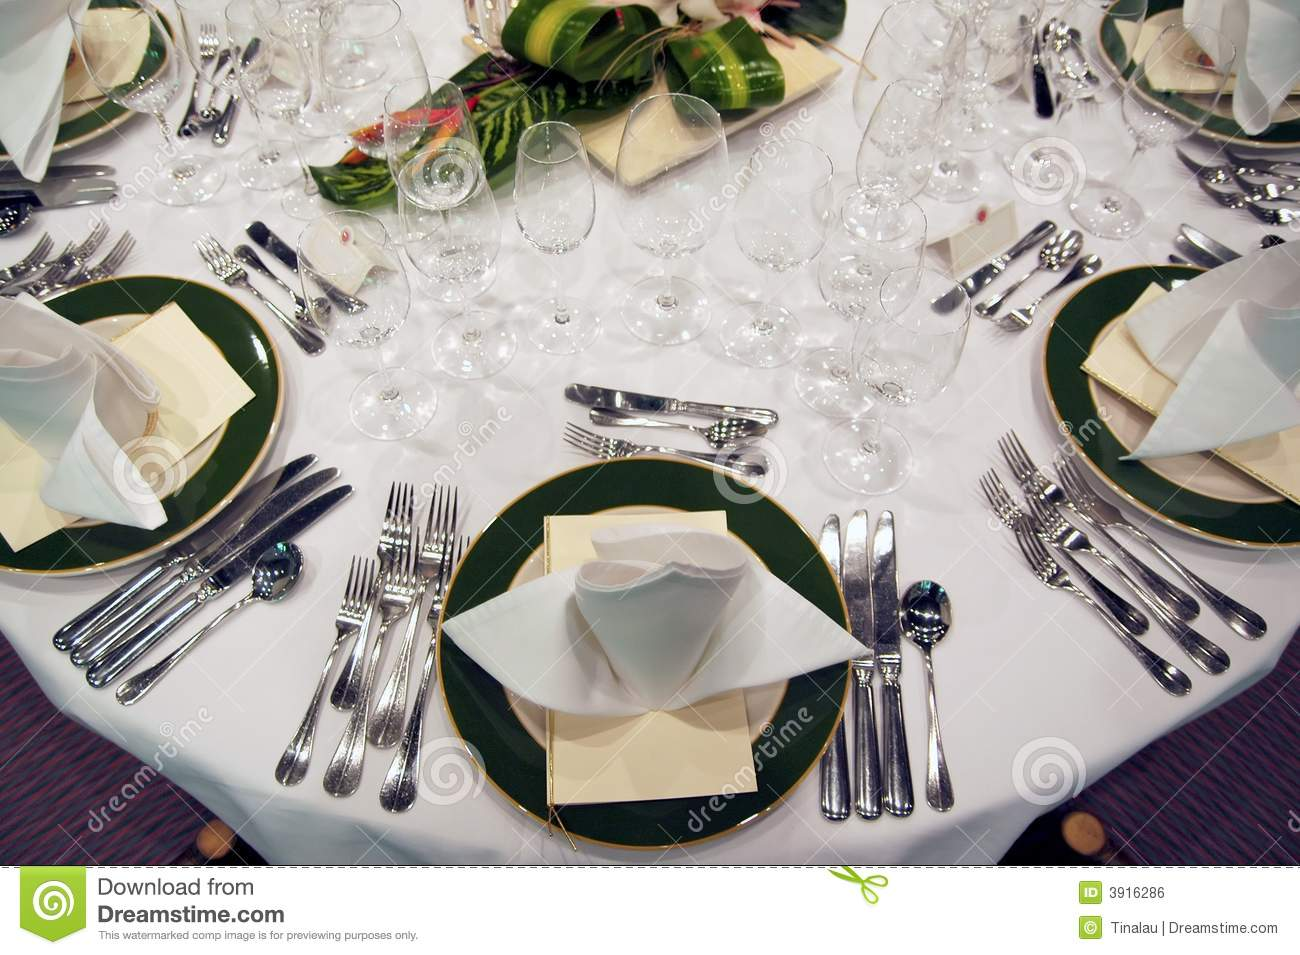 Formal Dinner Setting Royalty Free Stock Image Image  : formal dinner setting 3916286 from www.dreamstime.com size 1300 x 955 jpeg 149kB